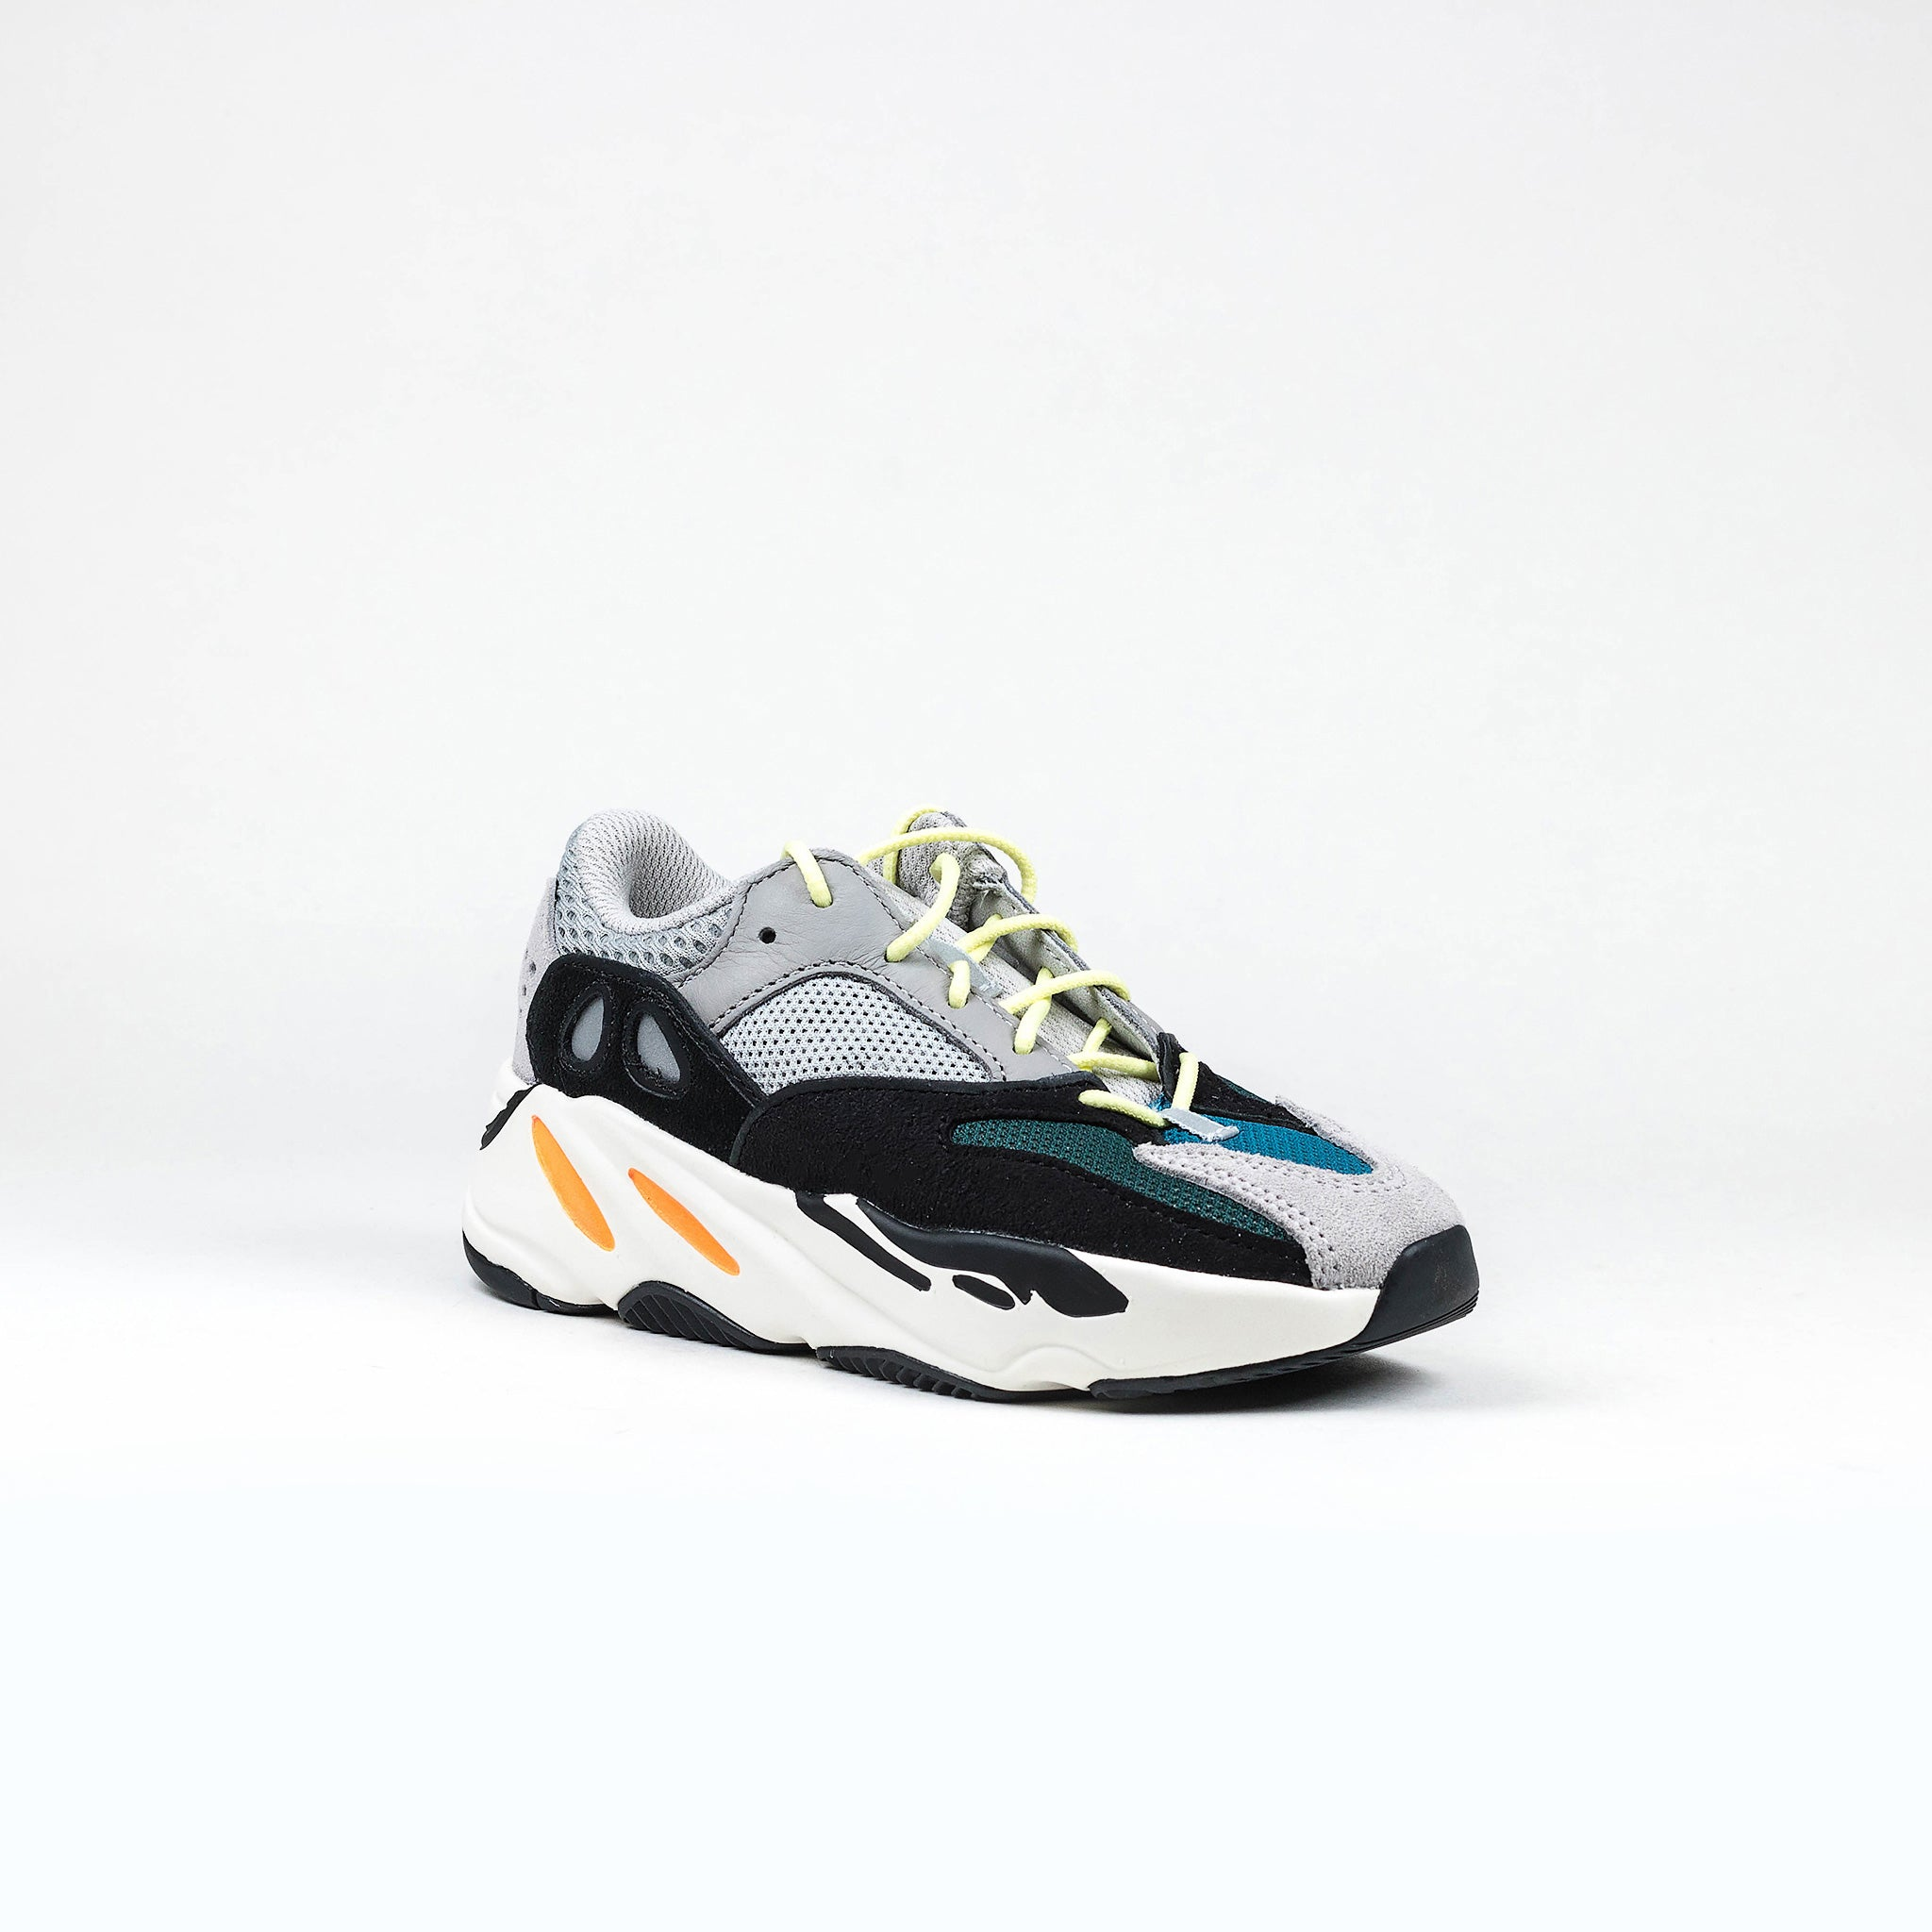 best service 713f8 70910 Yeezy Boost 700 Wave Runner Kids